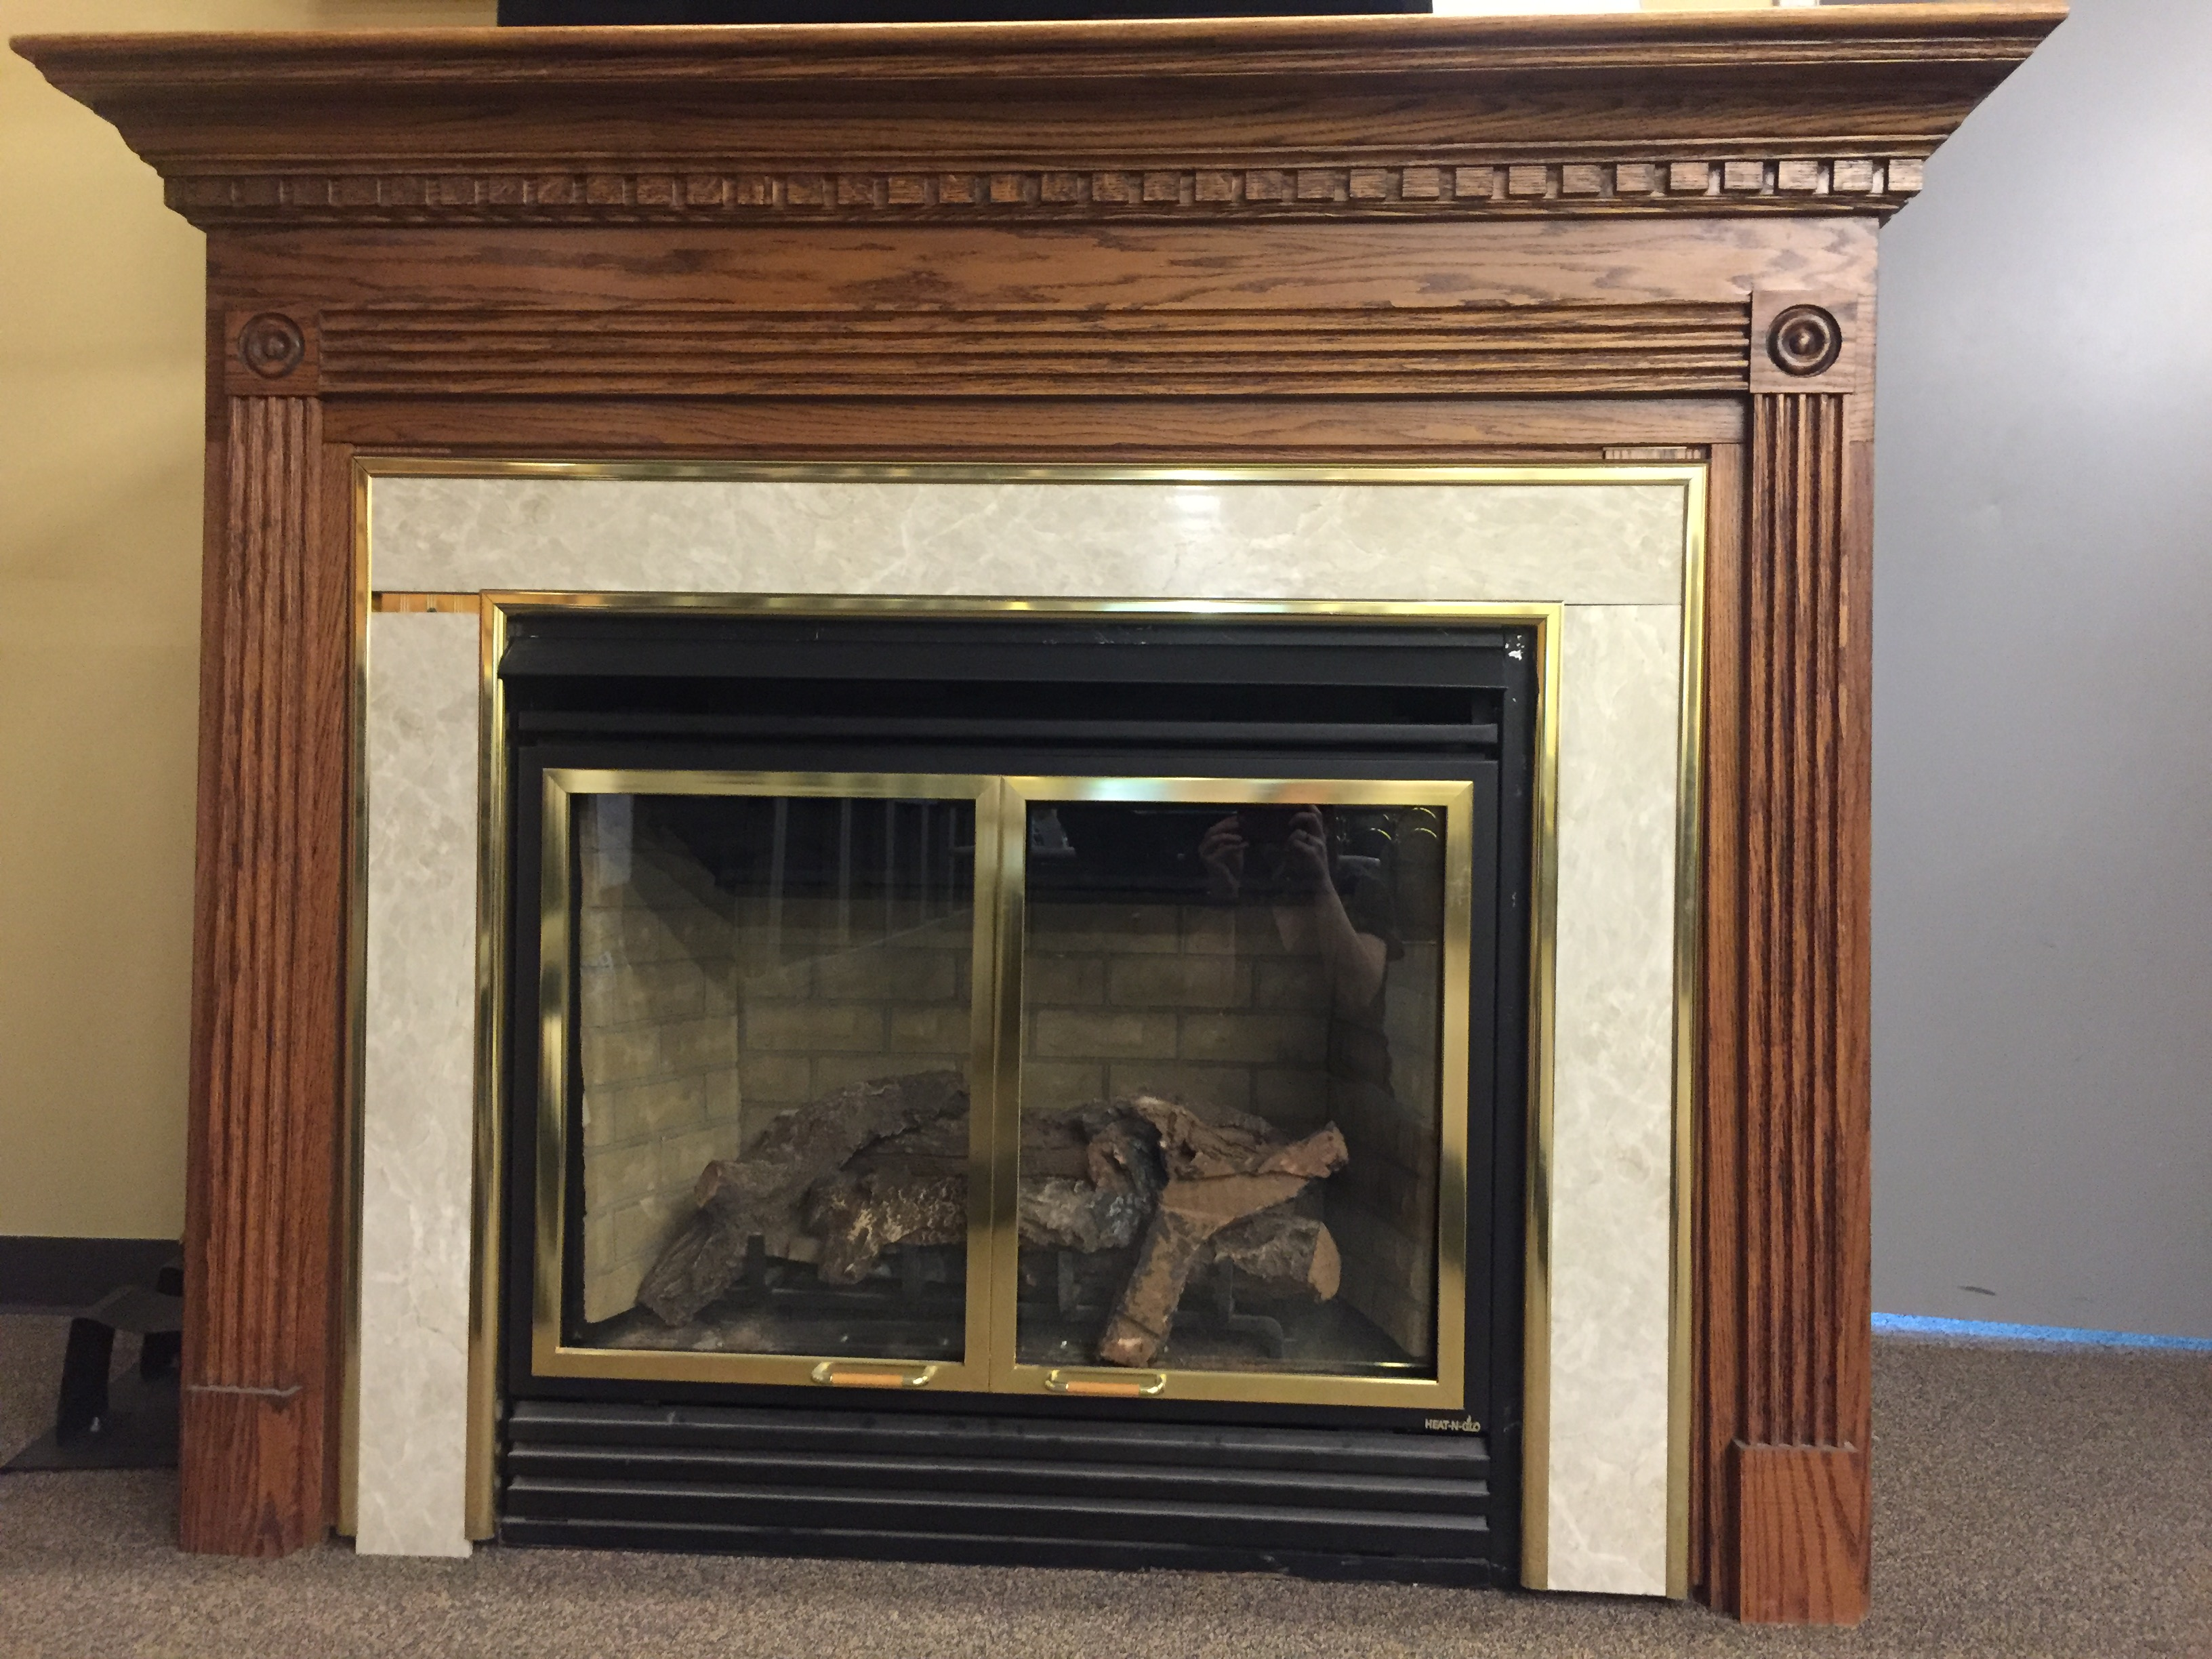 built prices in inch firebox revillusion dimplex linear gas fireplace front electric blue